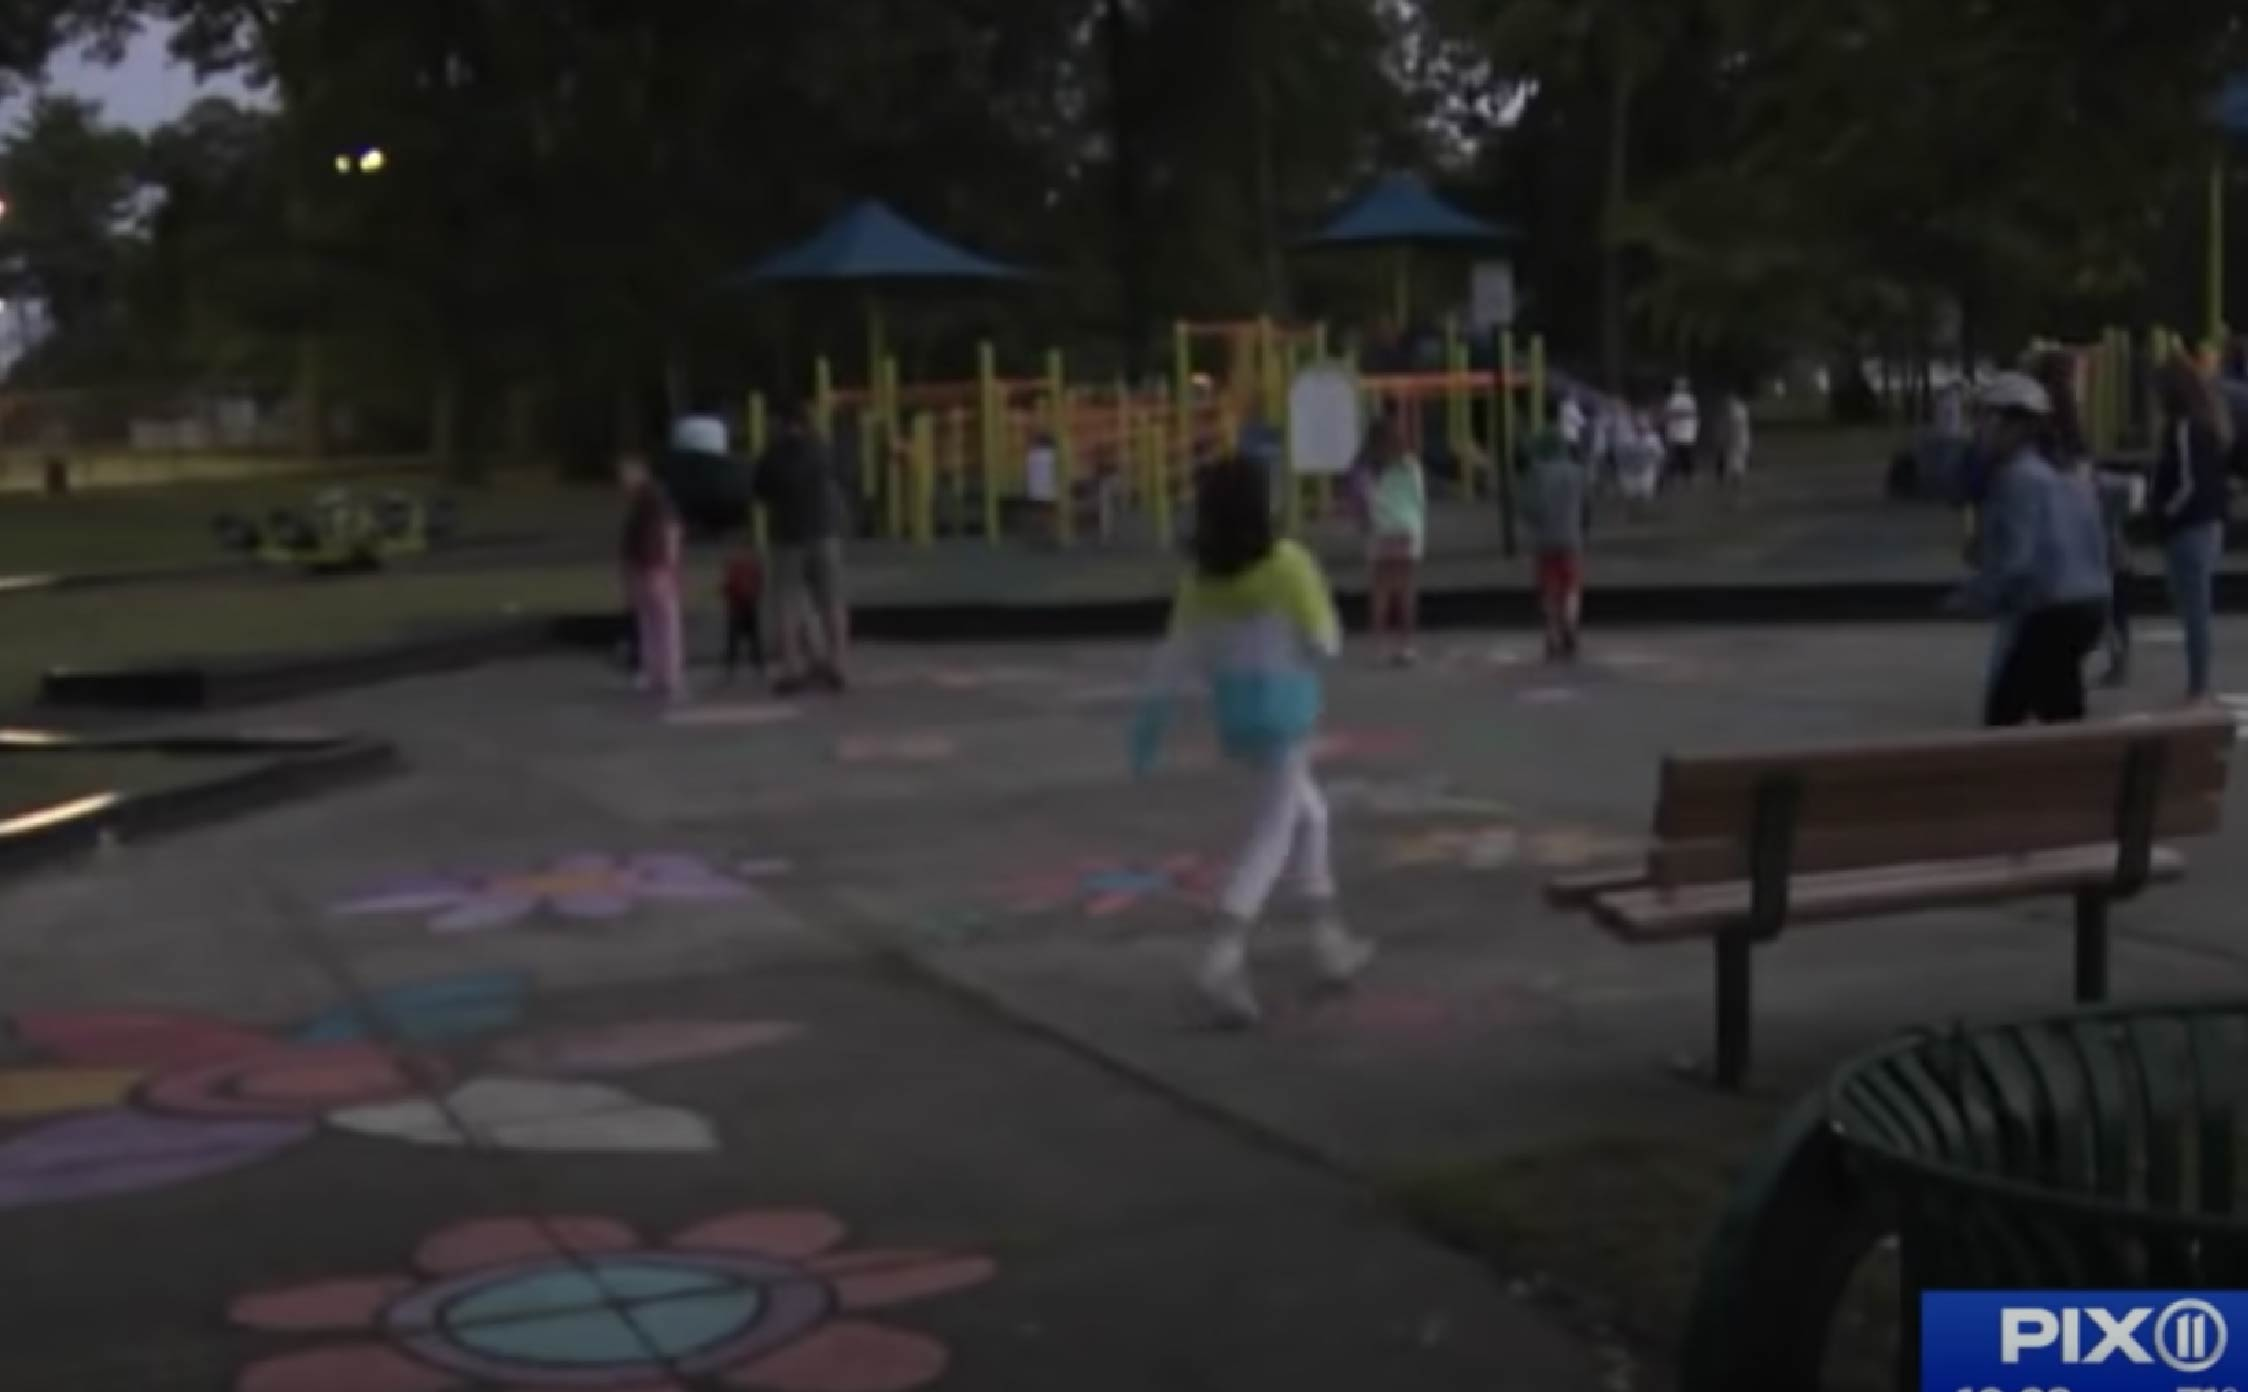 10-Year-Old Autistic Boy Sexually Abused By Mob of Teens at Park, they Filmed Attack and Posted Horrific Video on Social Media